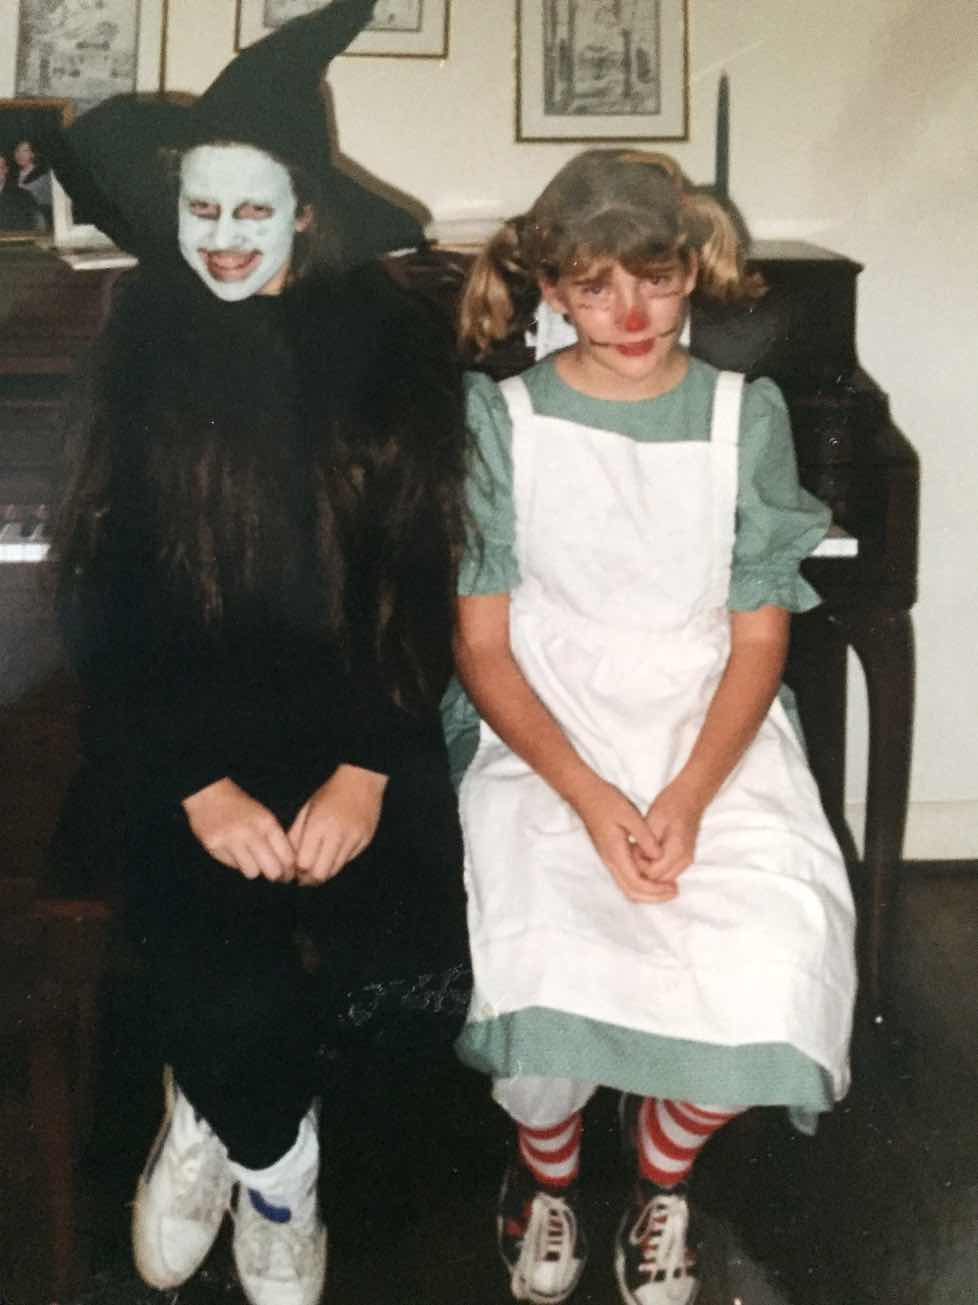 Shaving at 10 and 11 years old? You are probably wondering, were these girls precocious, popular types in middle school? Yes. The answer is yes. This is us in 6th grade as a sexy witch and a sexy Raggedy Ann for Halloween.